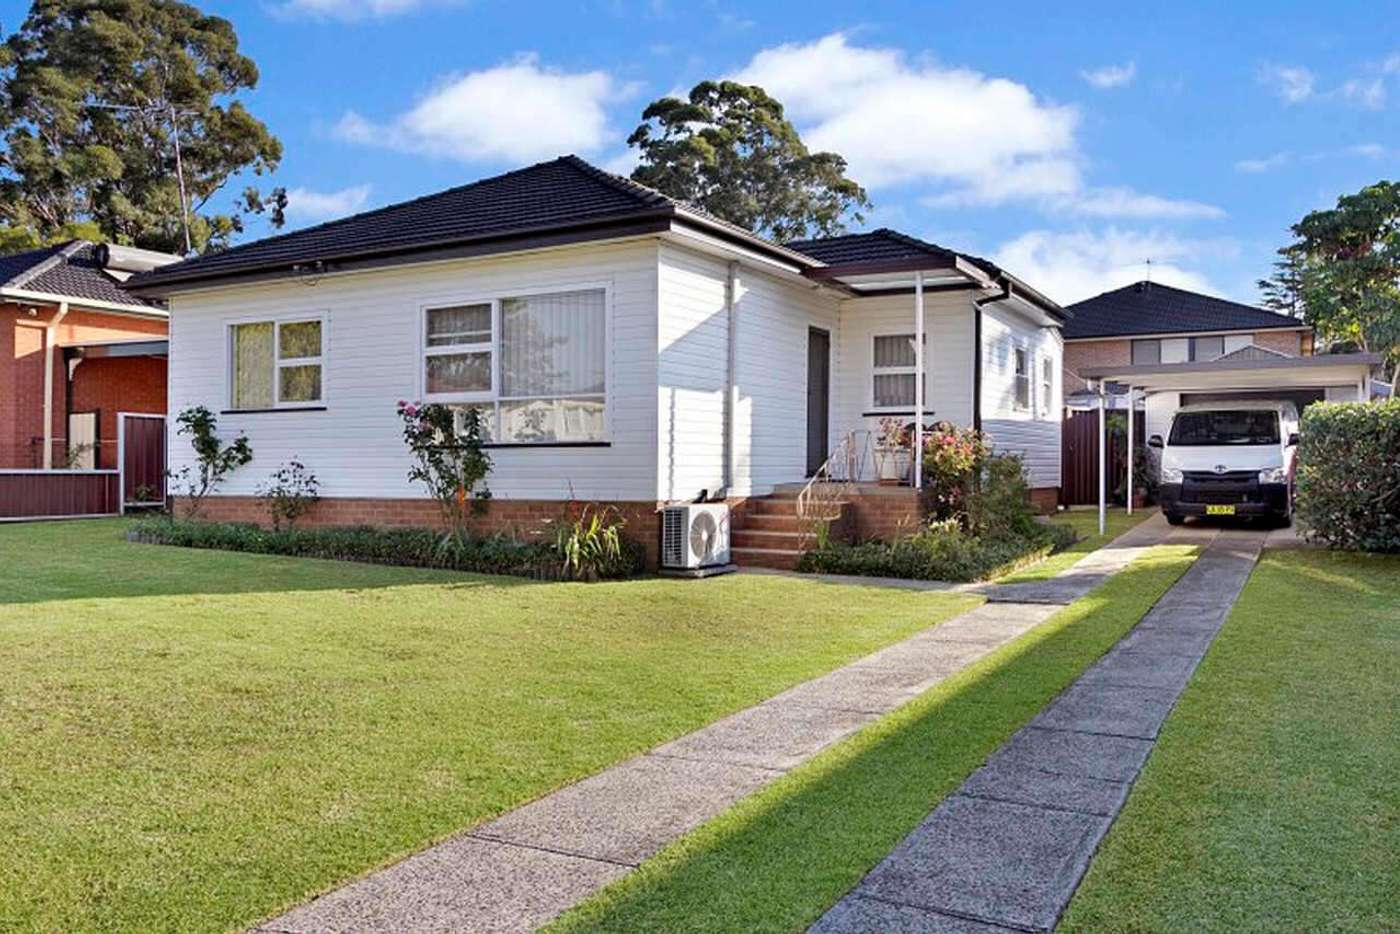 Main view of Homely house listing, 37 Hanbury Street, Greystanes NSW 2145